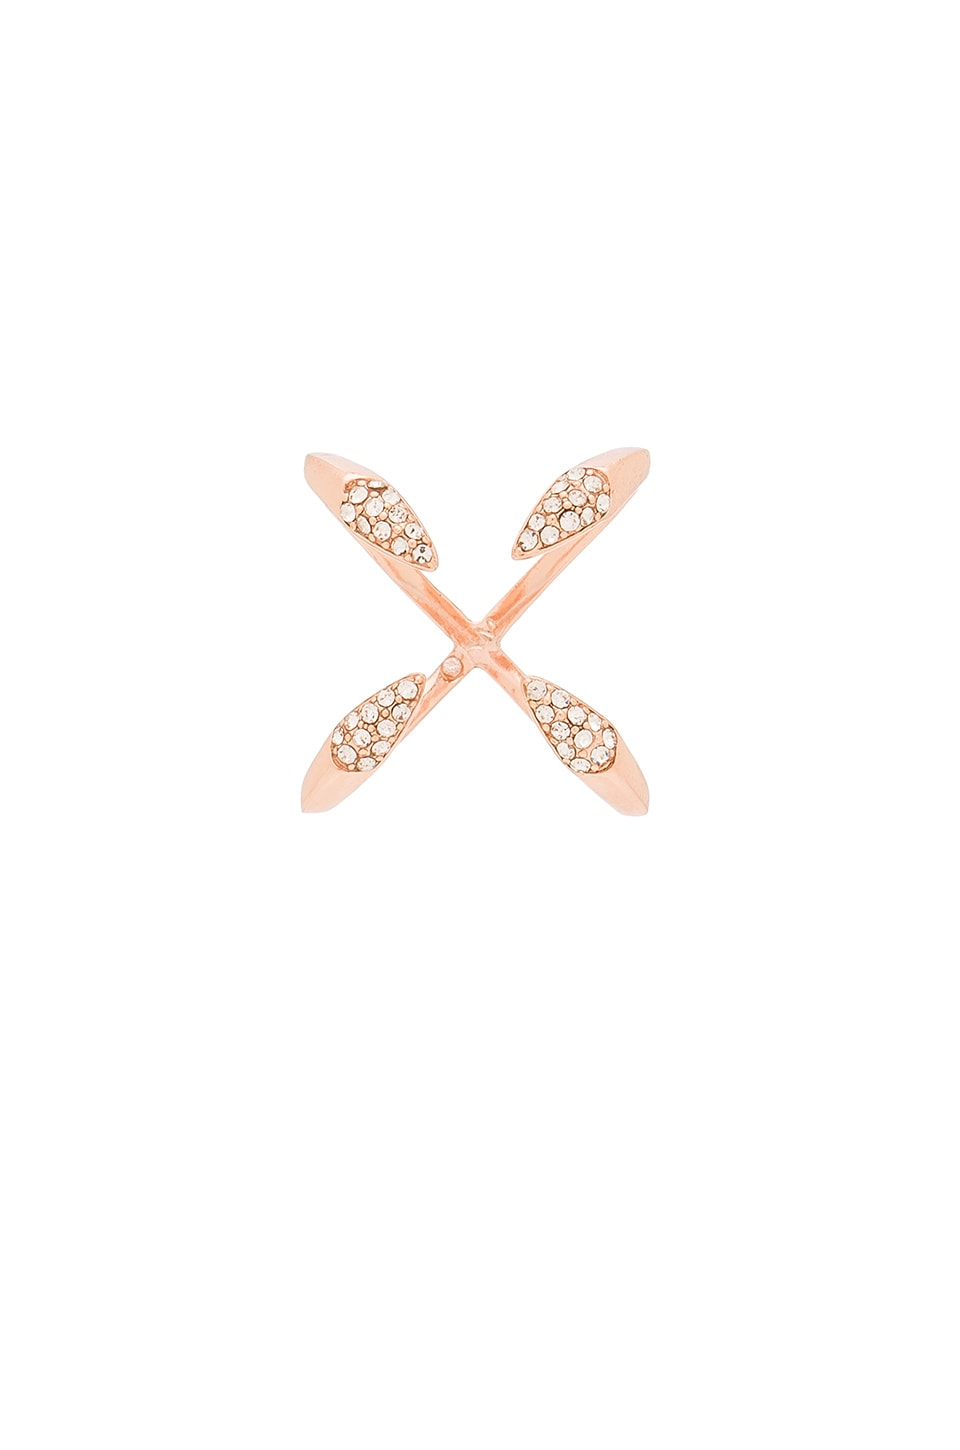 Rebecca Minkoff Pave Claw Ring in Rose Gold & Crystal